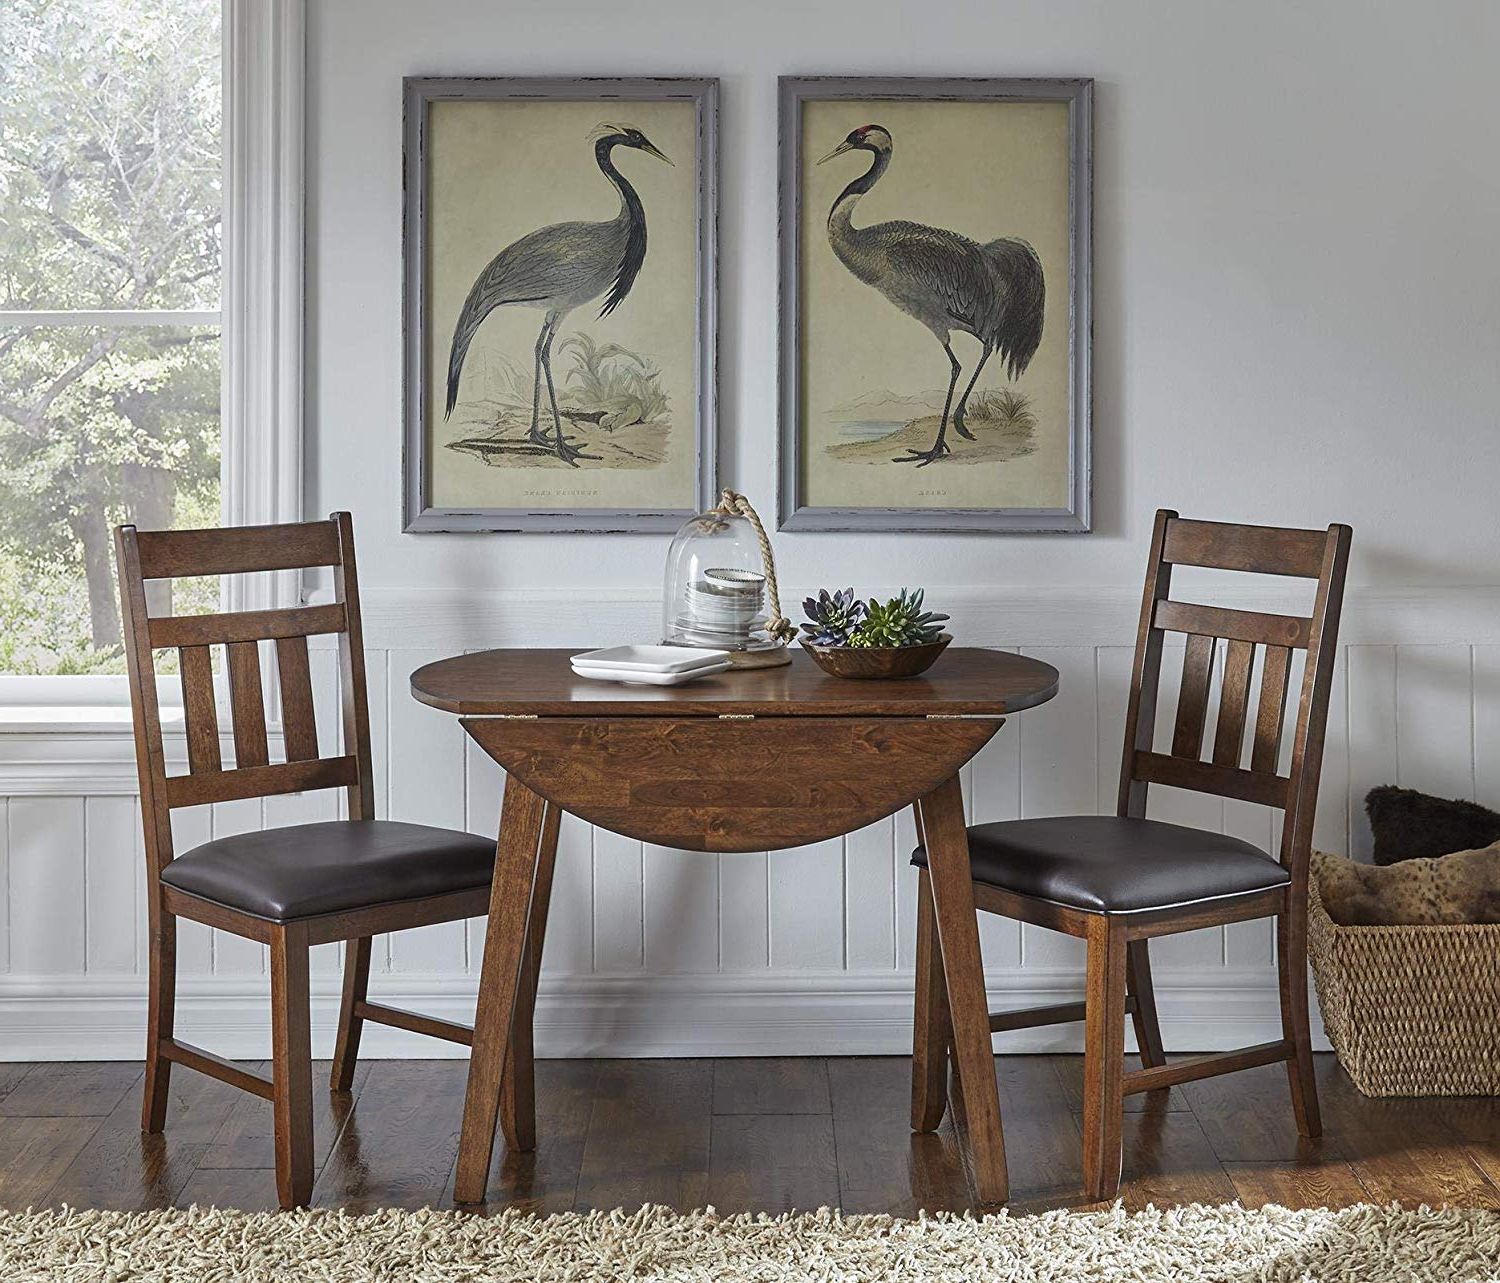 Newest Amazon - A-America Mason 42Inch Round Dropleaf Table within Transitional 4-Seating Double Drop Leaf Casual Dining Tables